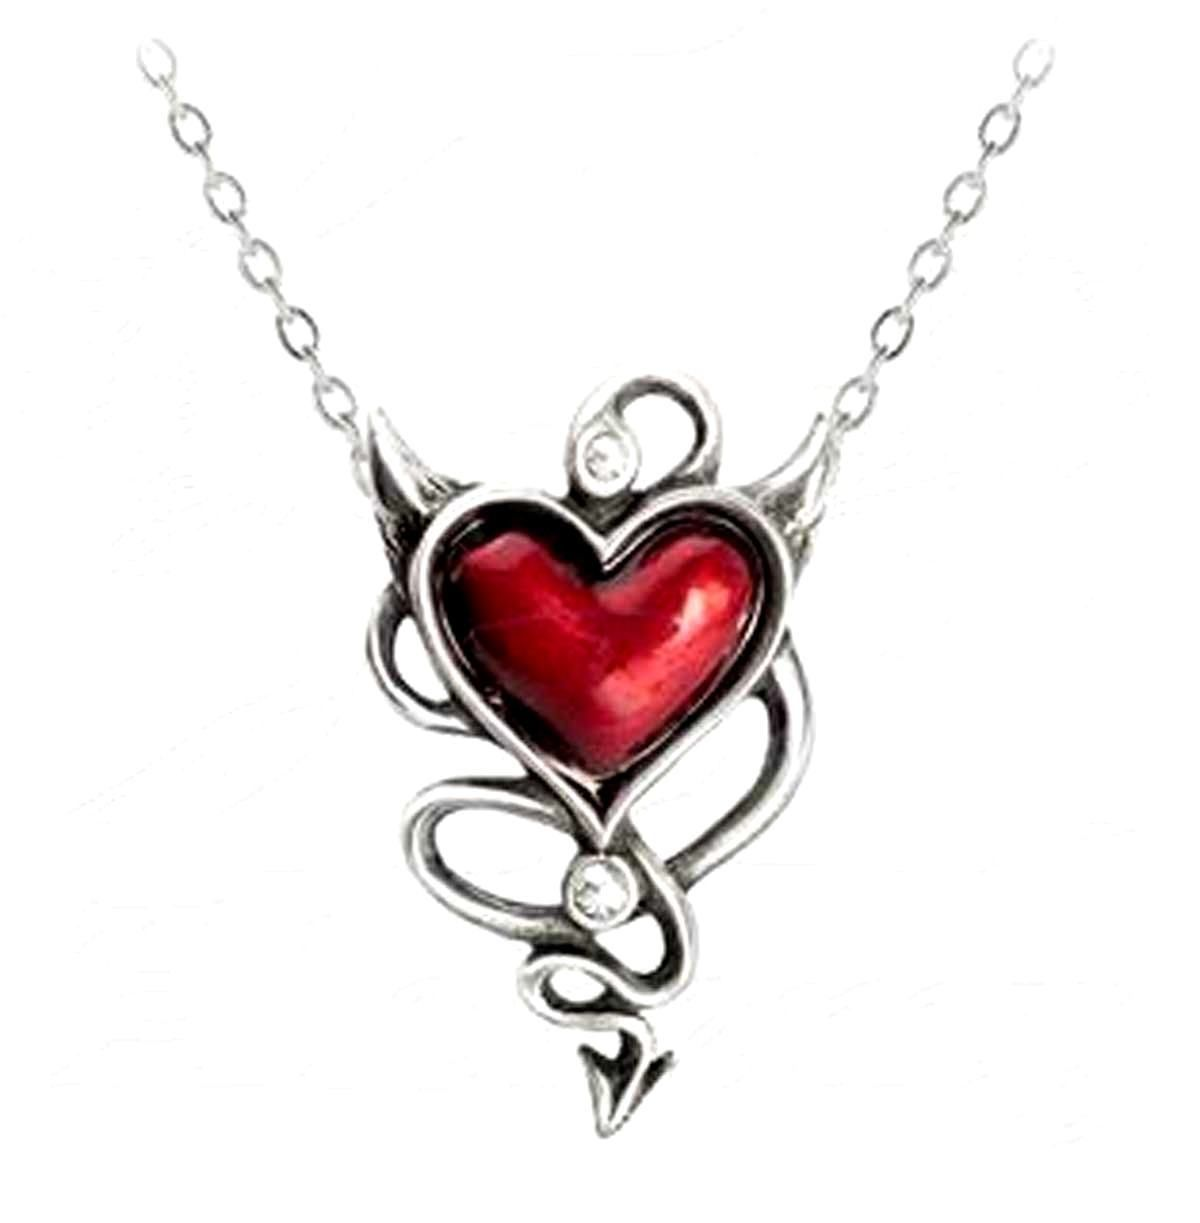 Alchemy UL17 Devil Heart Pendant Necklace Pewter Red Enamel Crystal